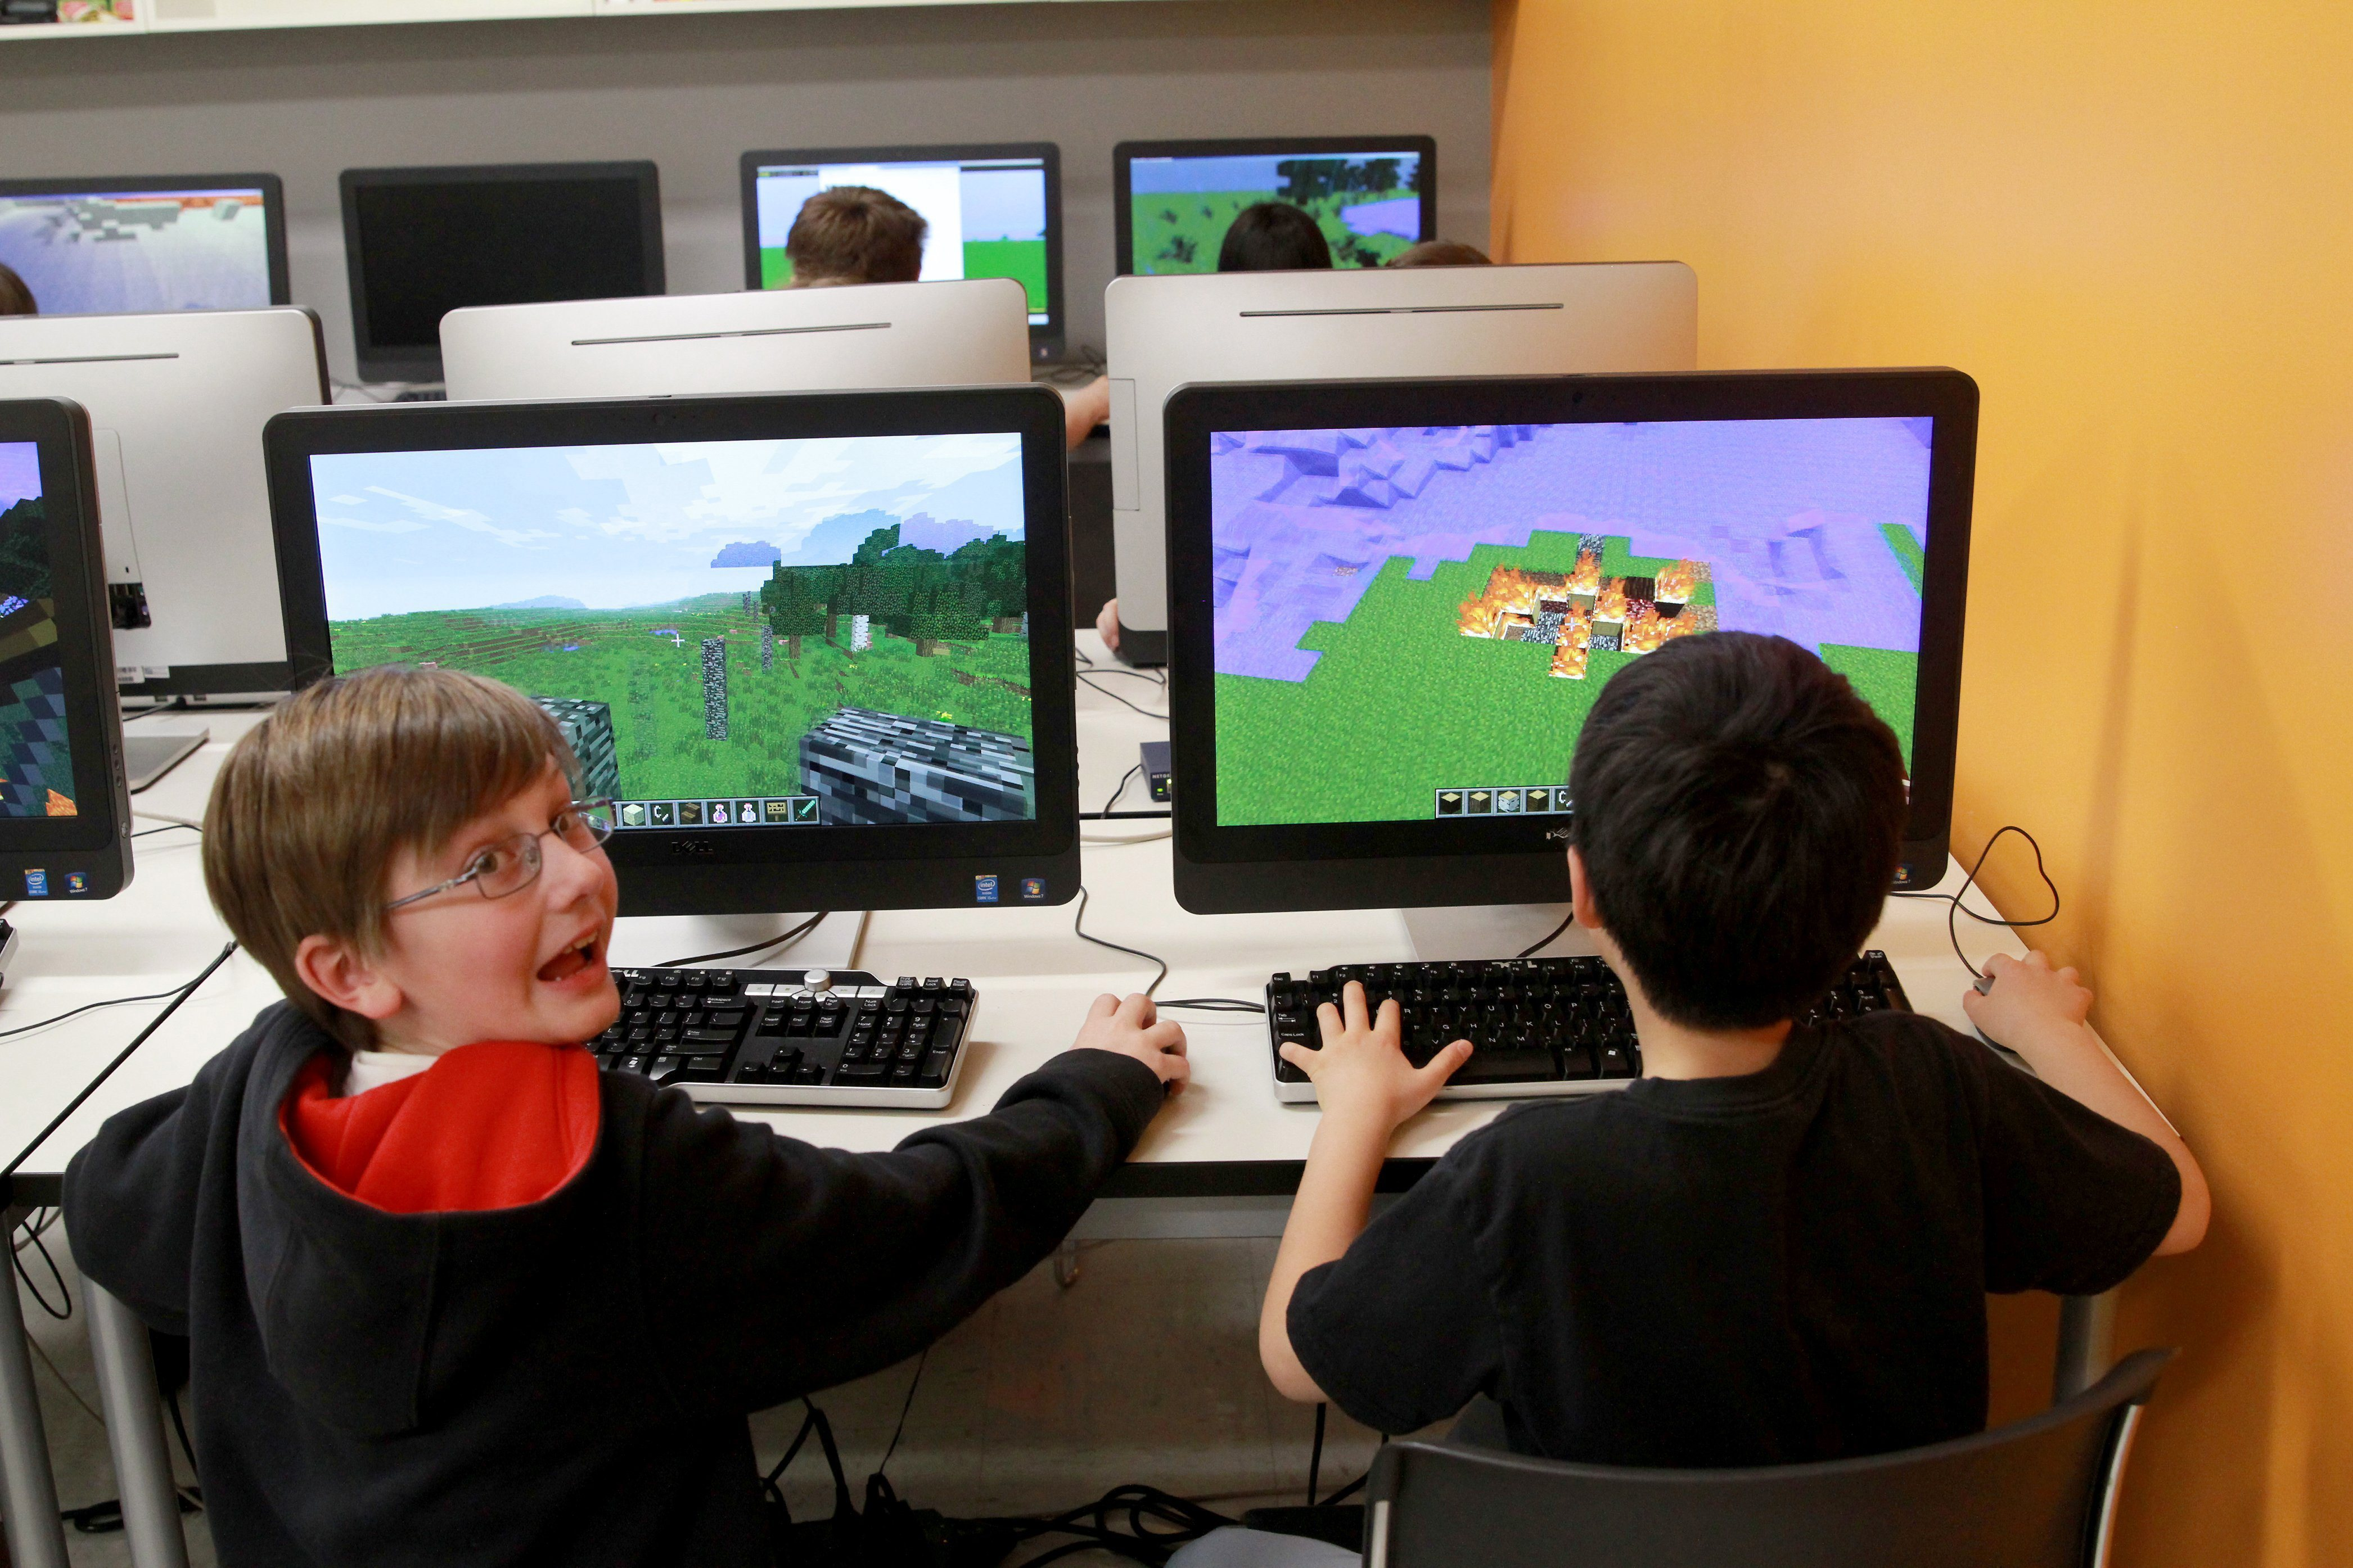 Bobby Craig, left, and Doogy Lee create worlds in Minecraft that parallel what they have bene reading in  The Hobbit  as part of their fifth grade class studies at Quest Academy in Palatine, Ill.